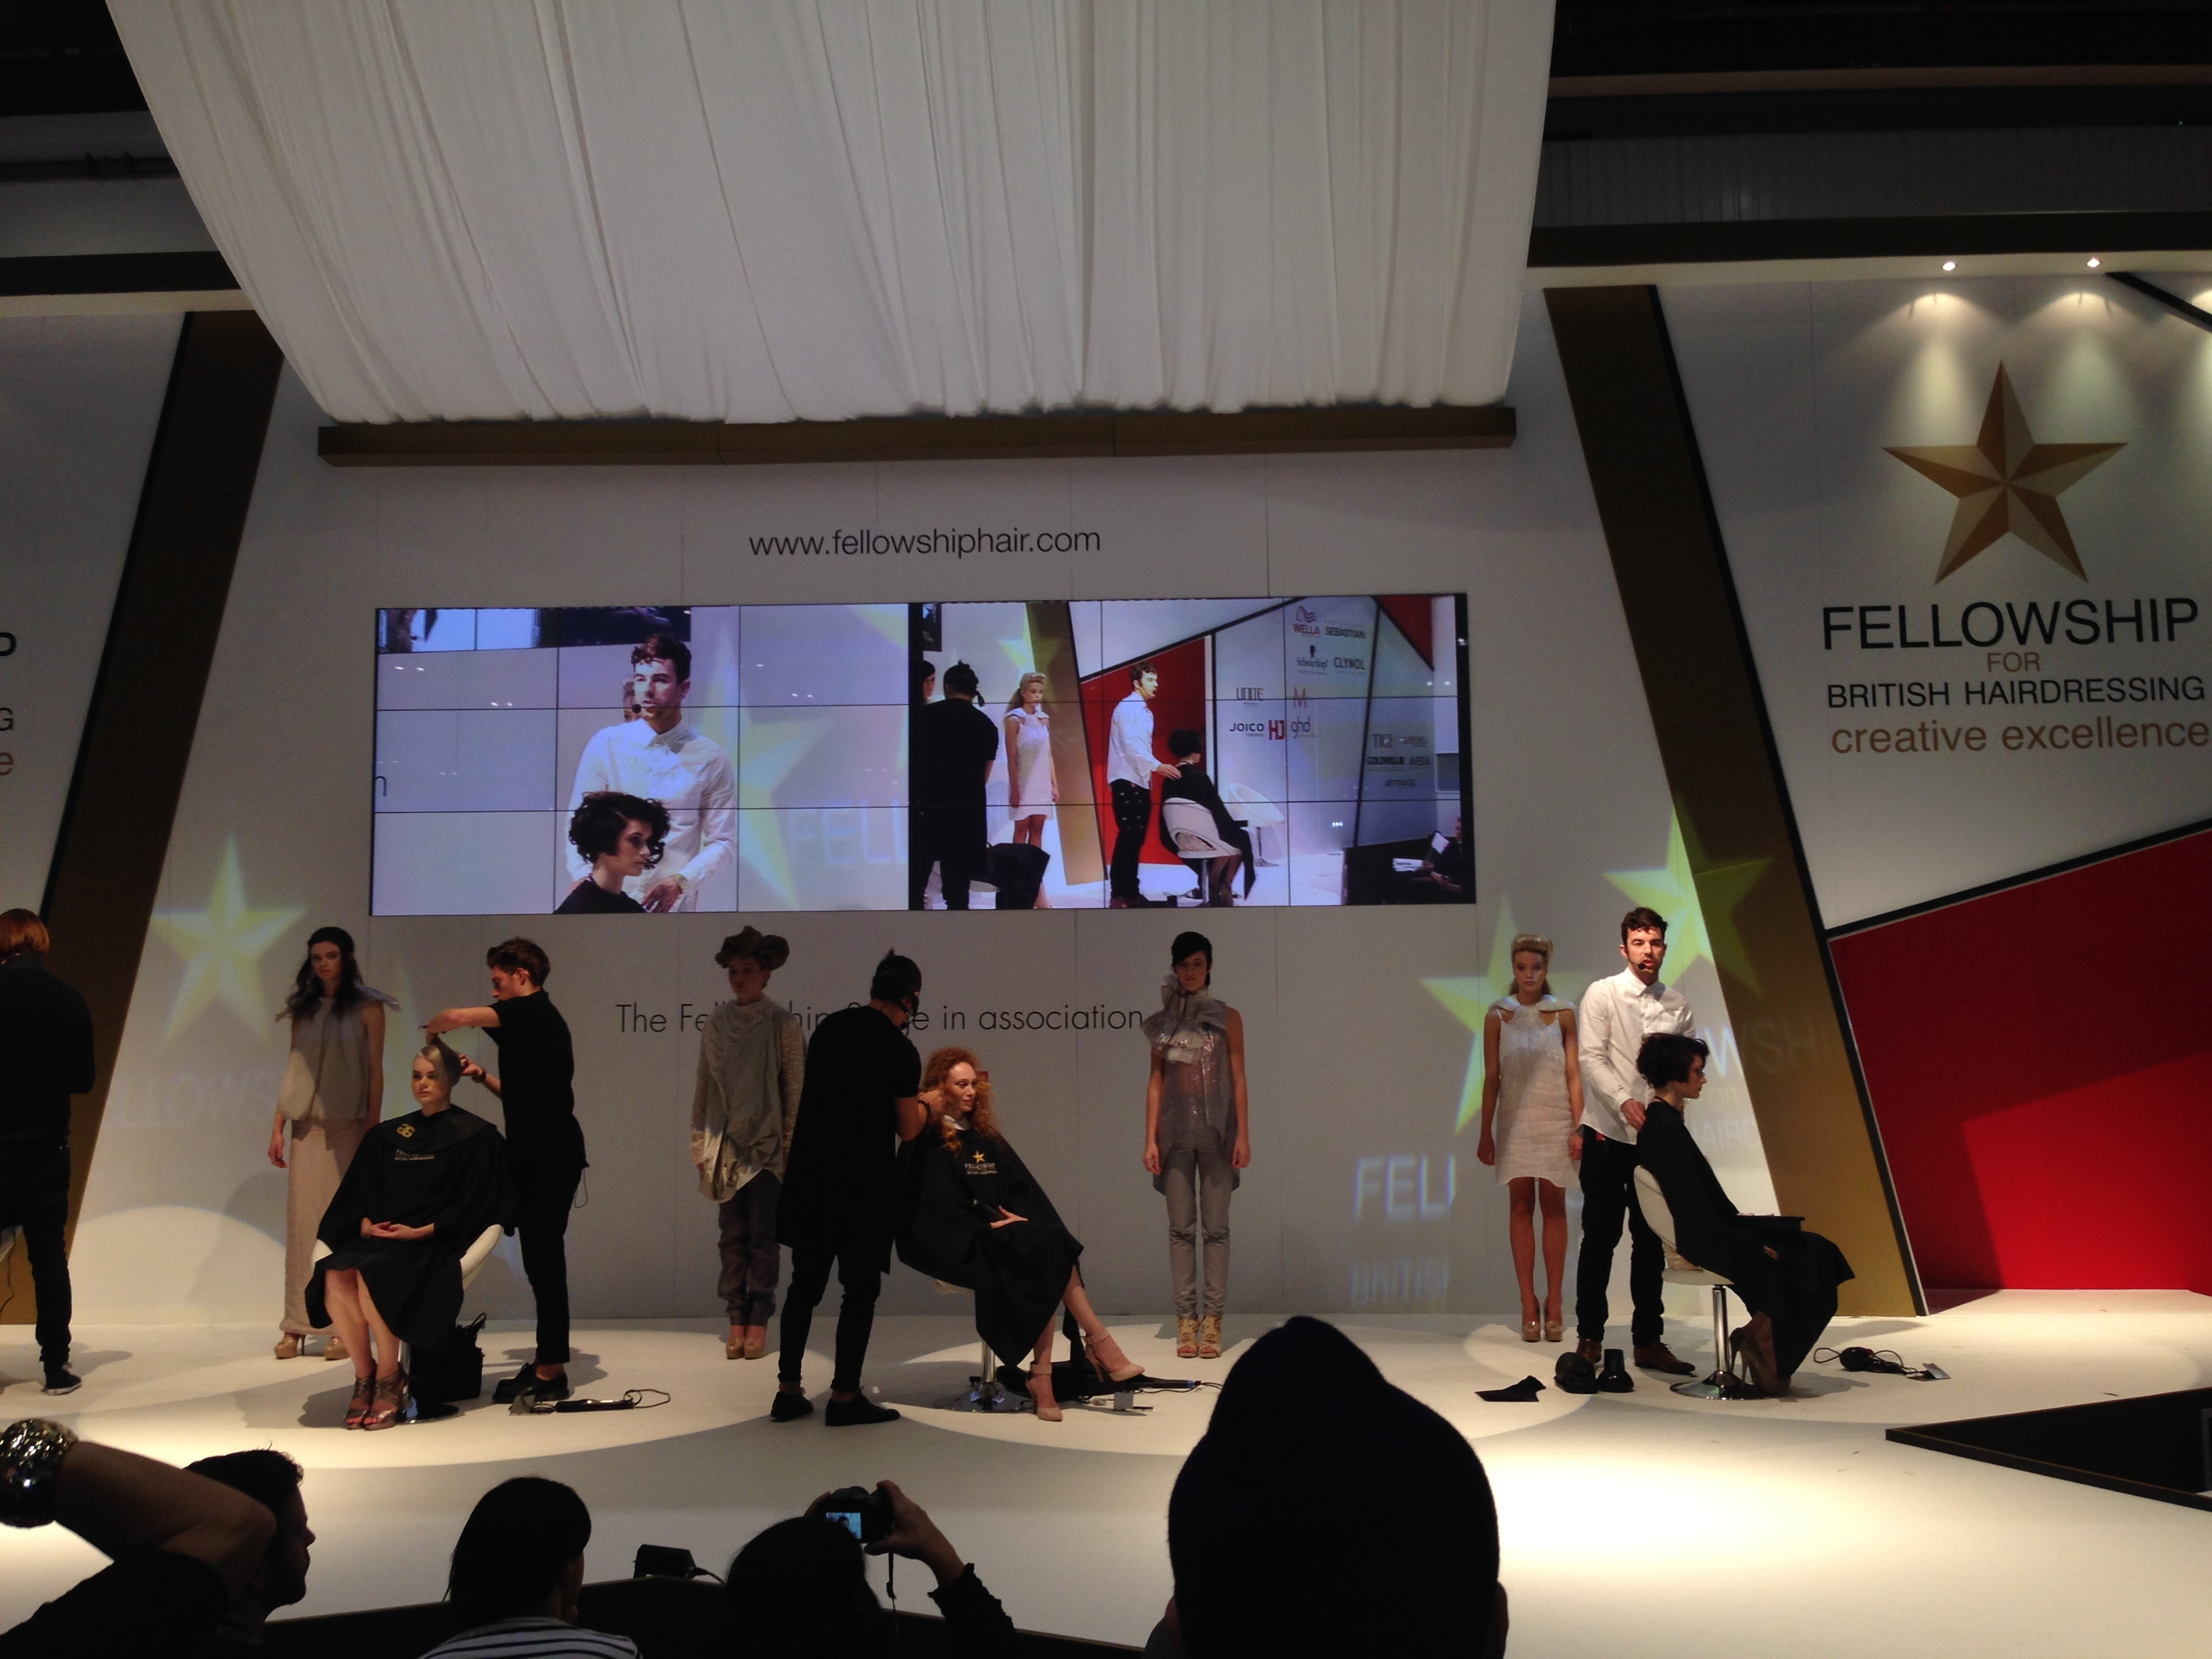 london-hair-expo-2013-fellowship-3.jpg